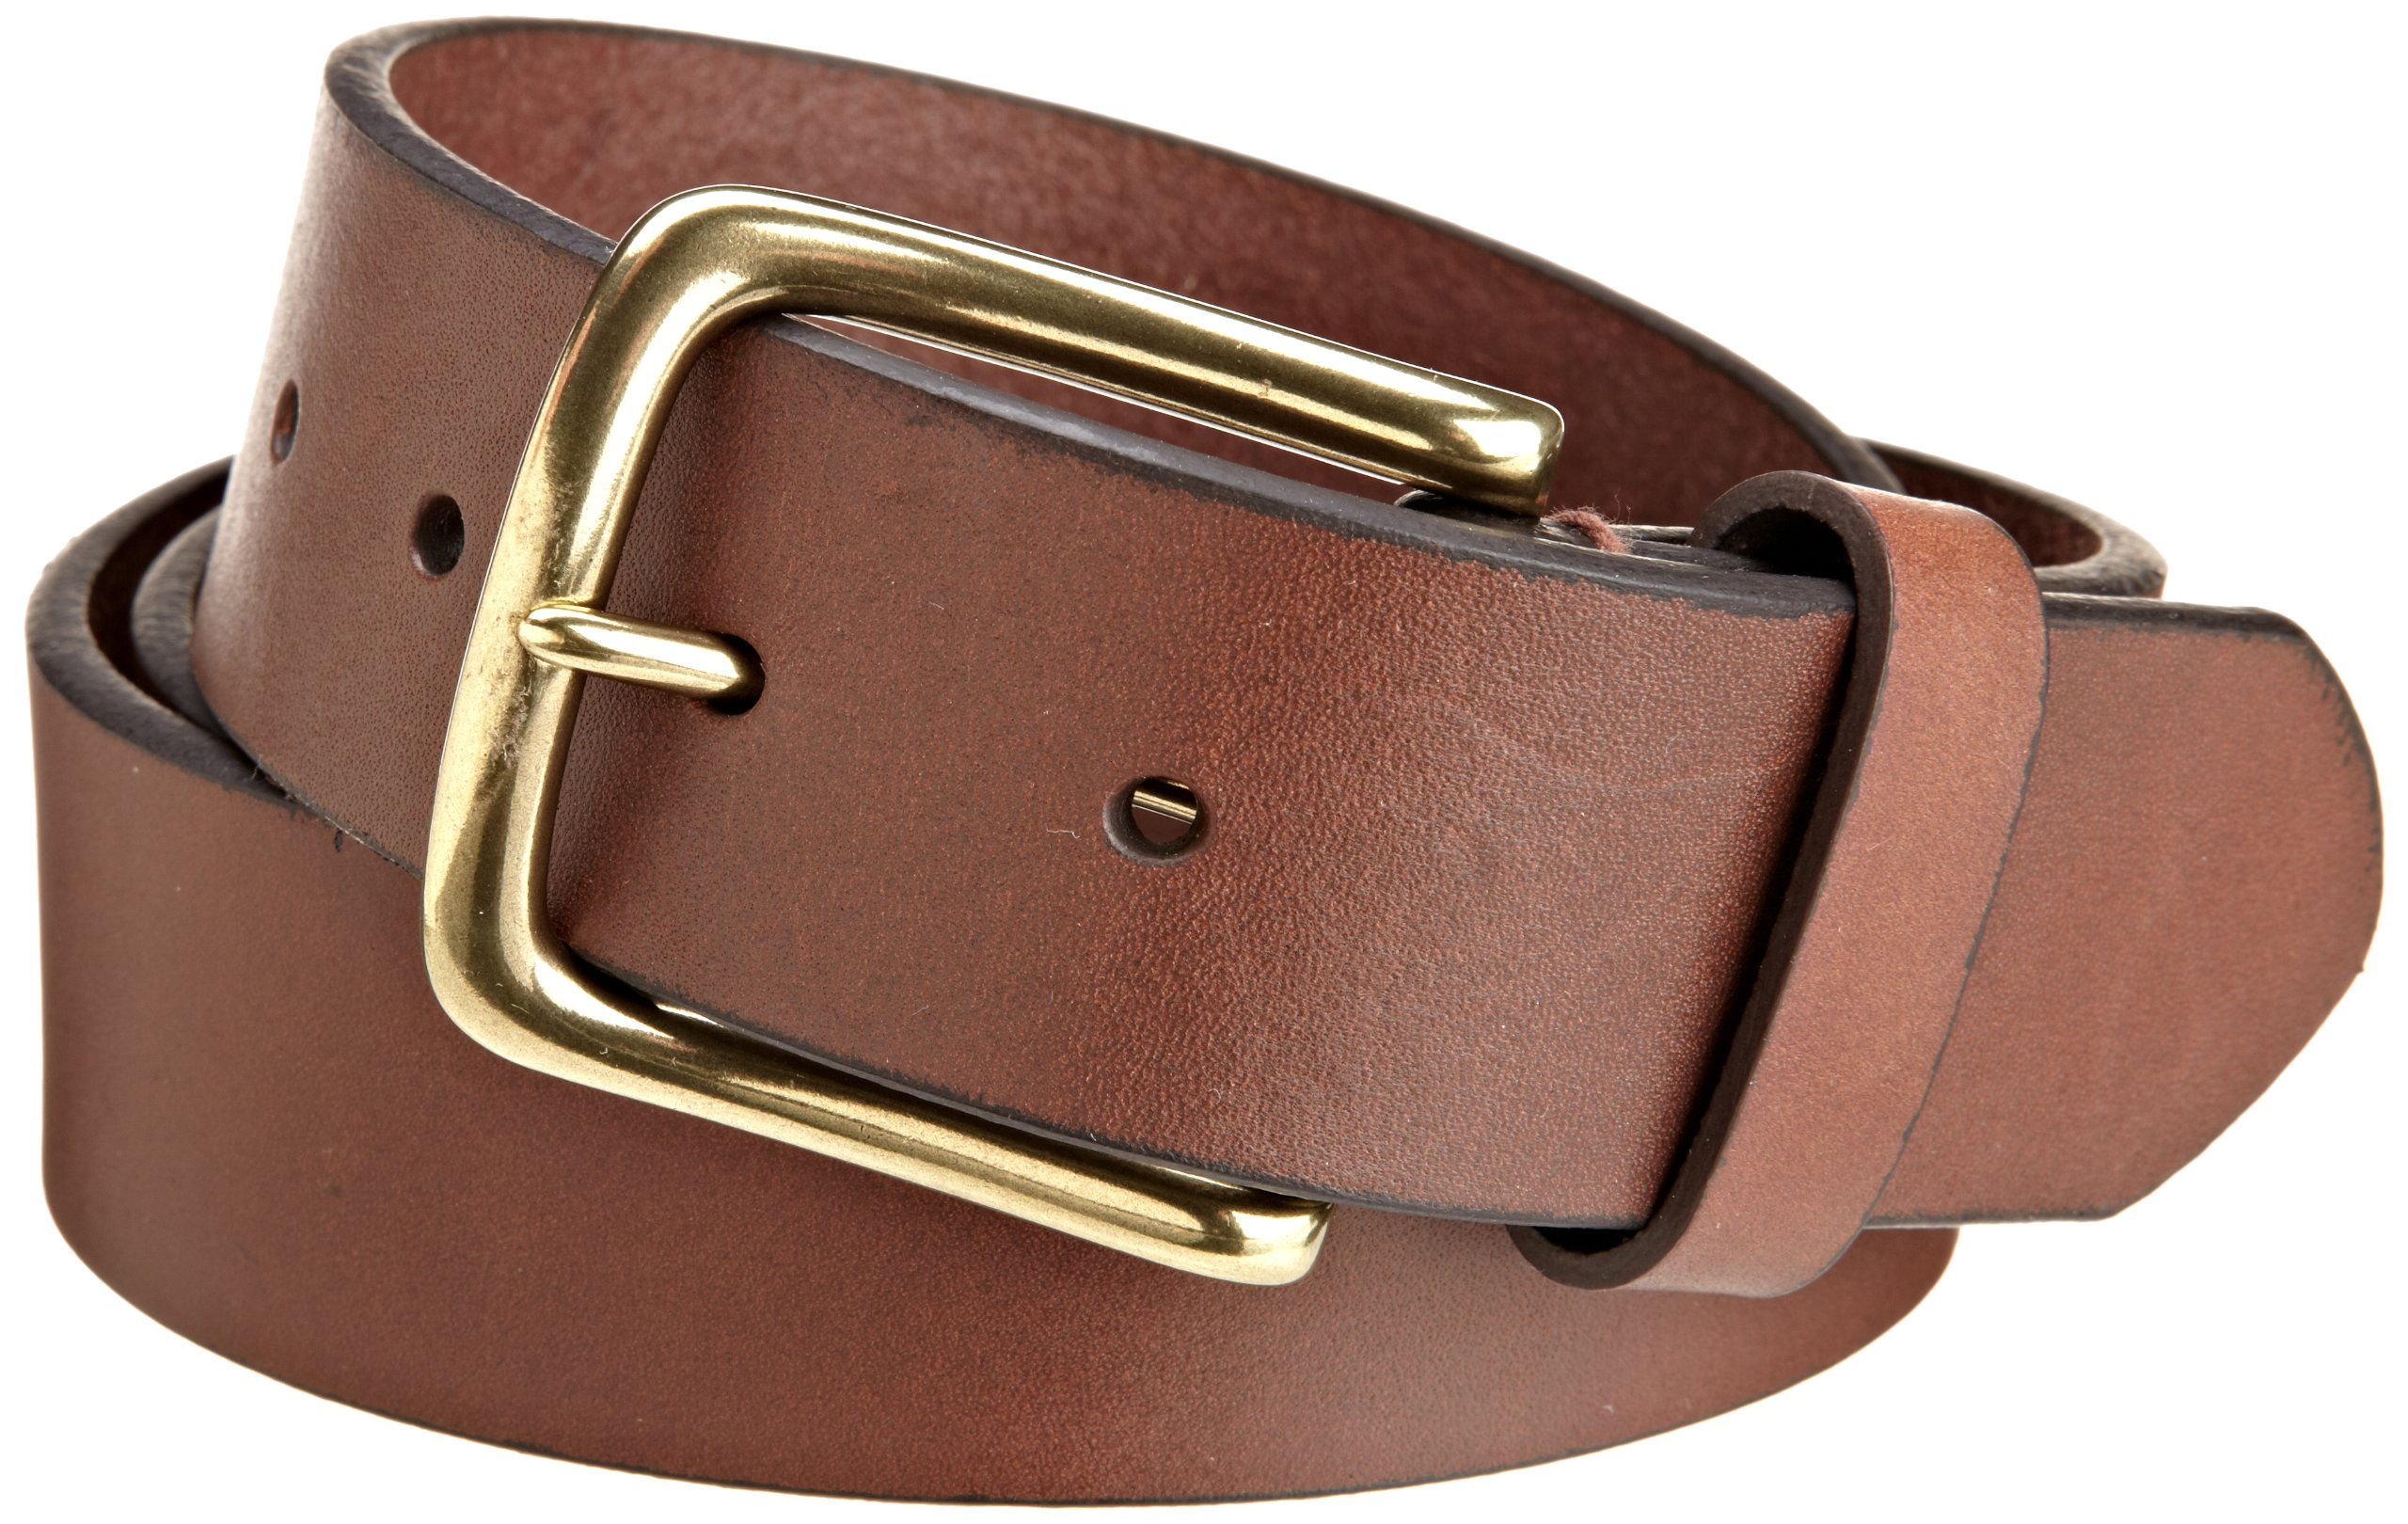 Tommy Hilfiger Men's Casual Belt, Brown, 42